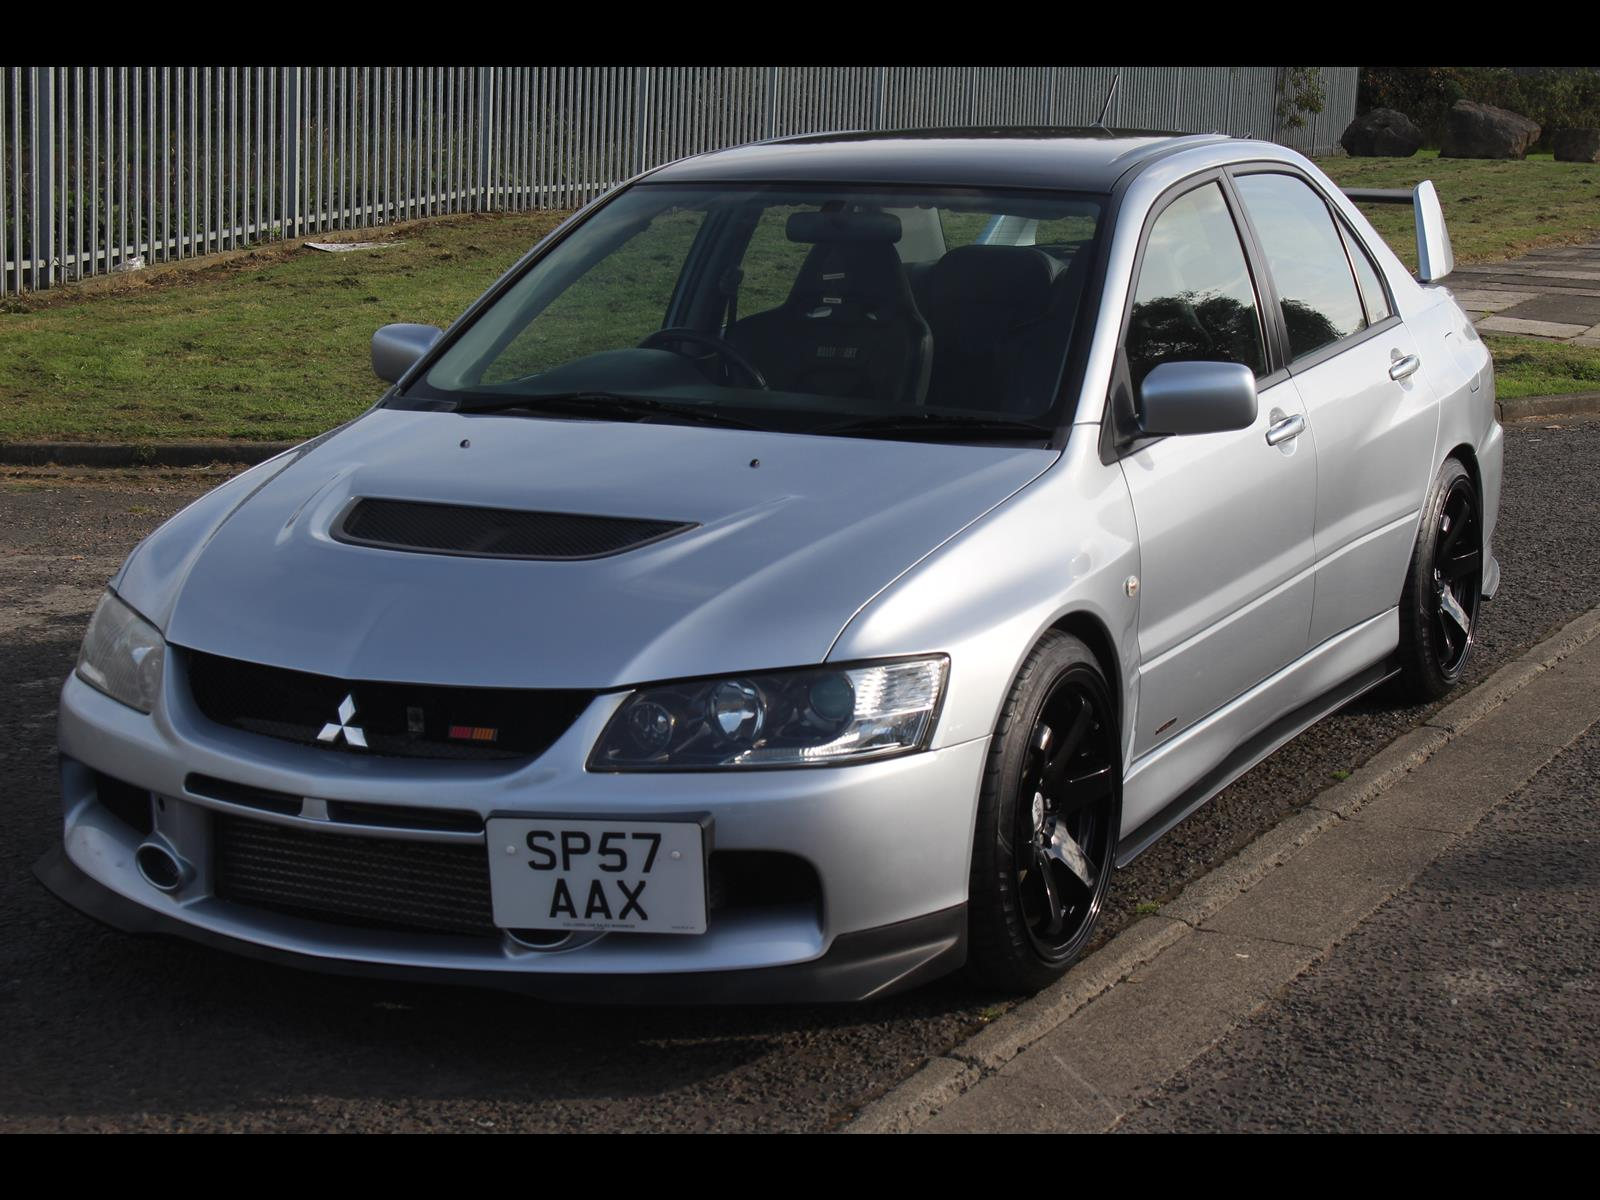 2007 Mitsubishi Lancer Evo 9 Fq340 Uk Forged Engine 500